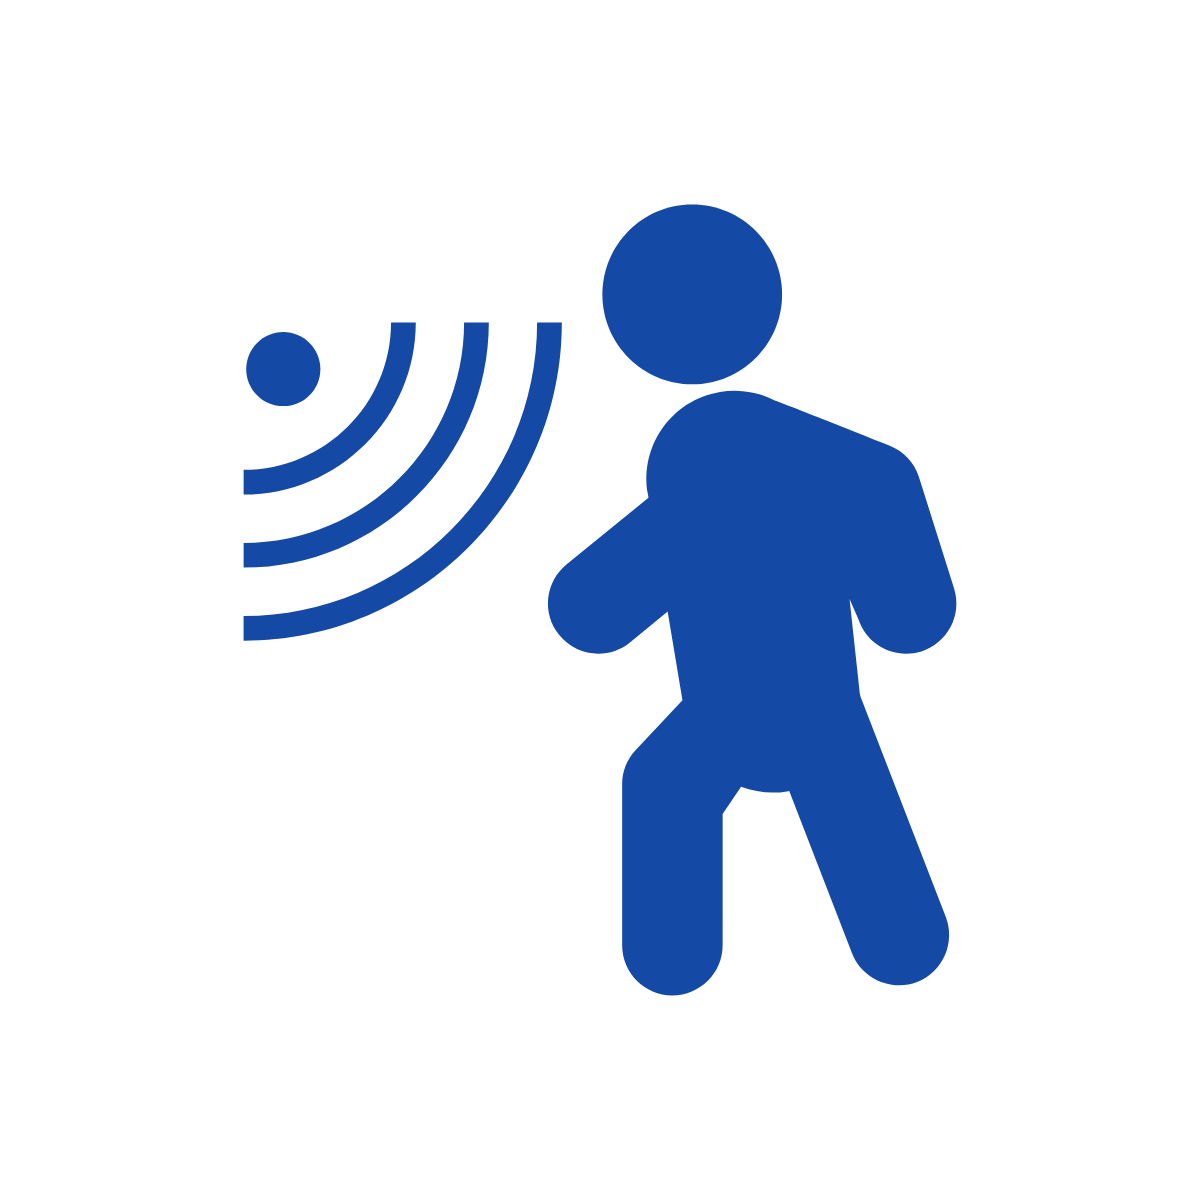 Stick figure of person with sensor waves show person detection